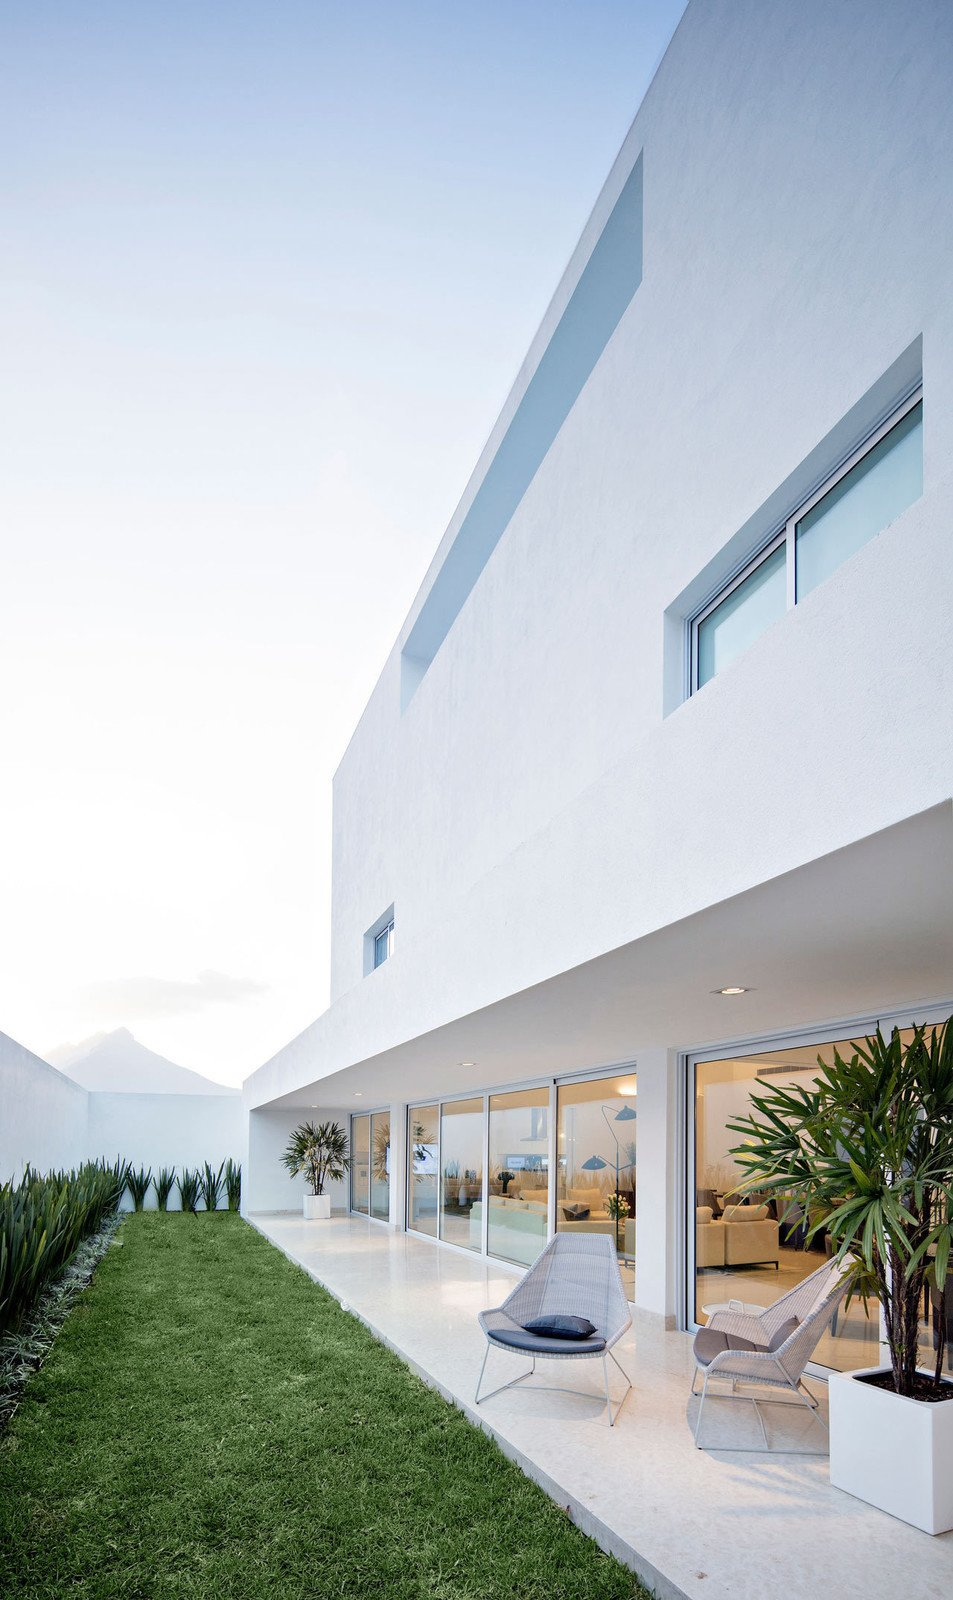 Photo 3 of 11 in 10 Bright White Cubist Homes Across the Globe